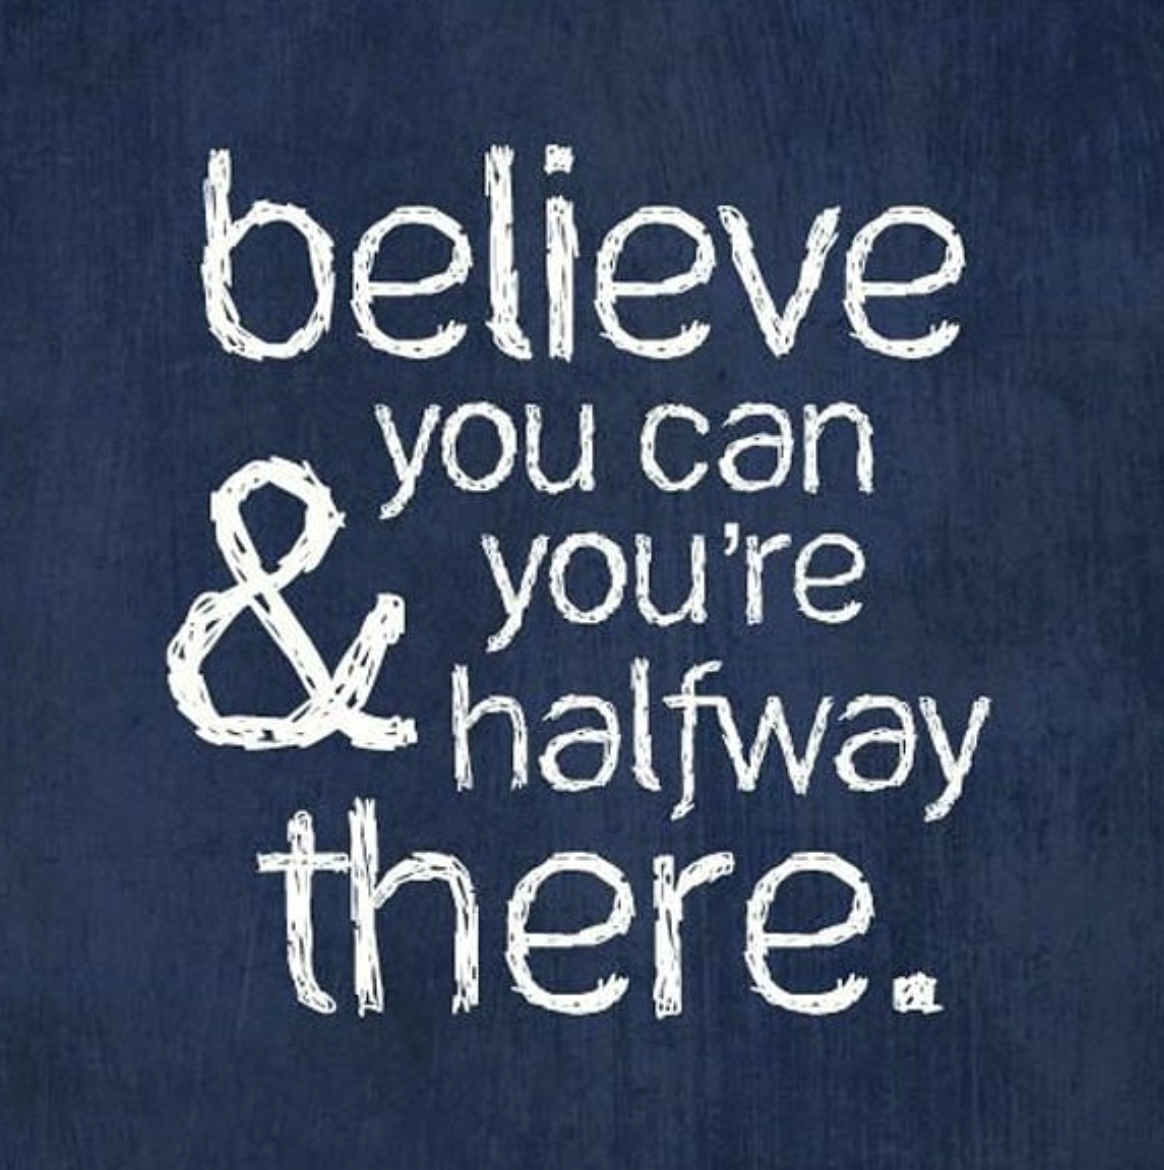 [Image] Believe you can, and you're halfway there.